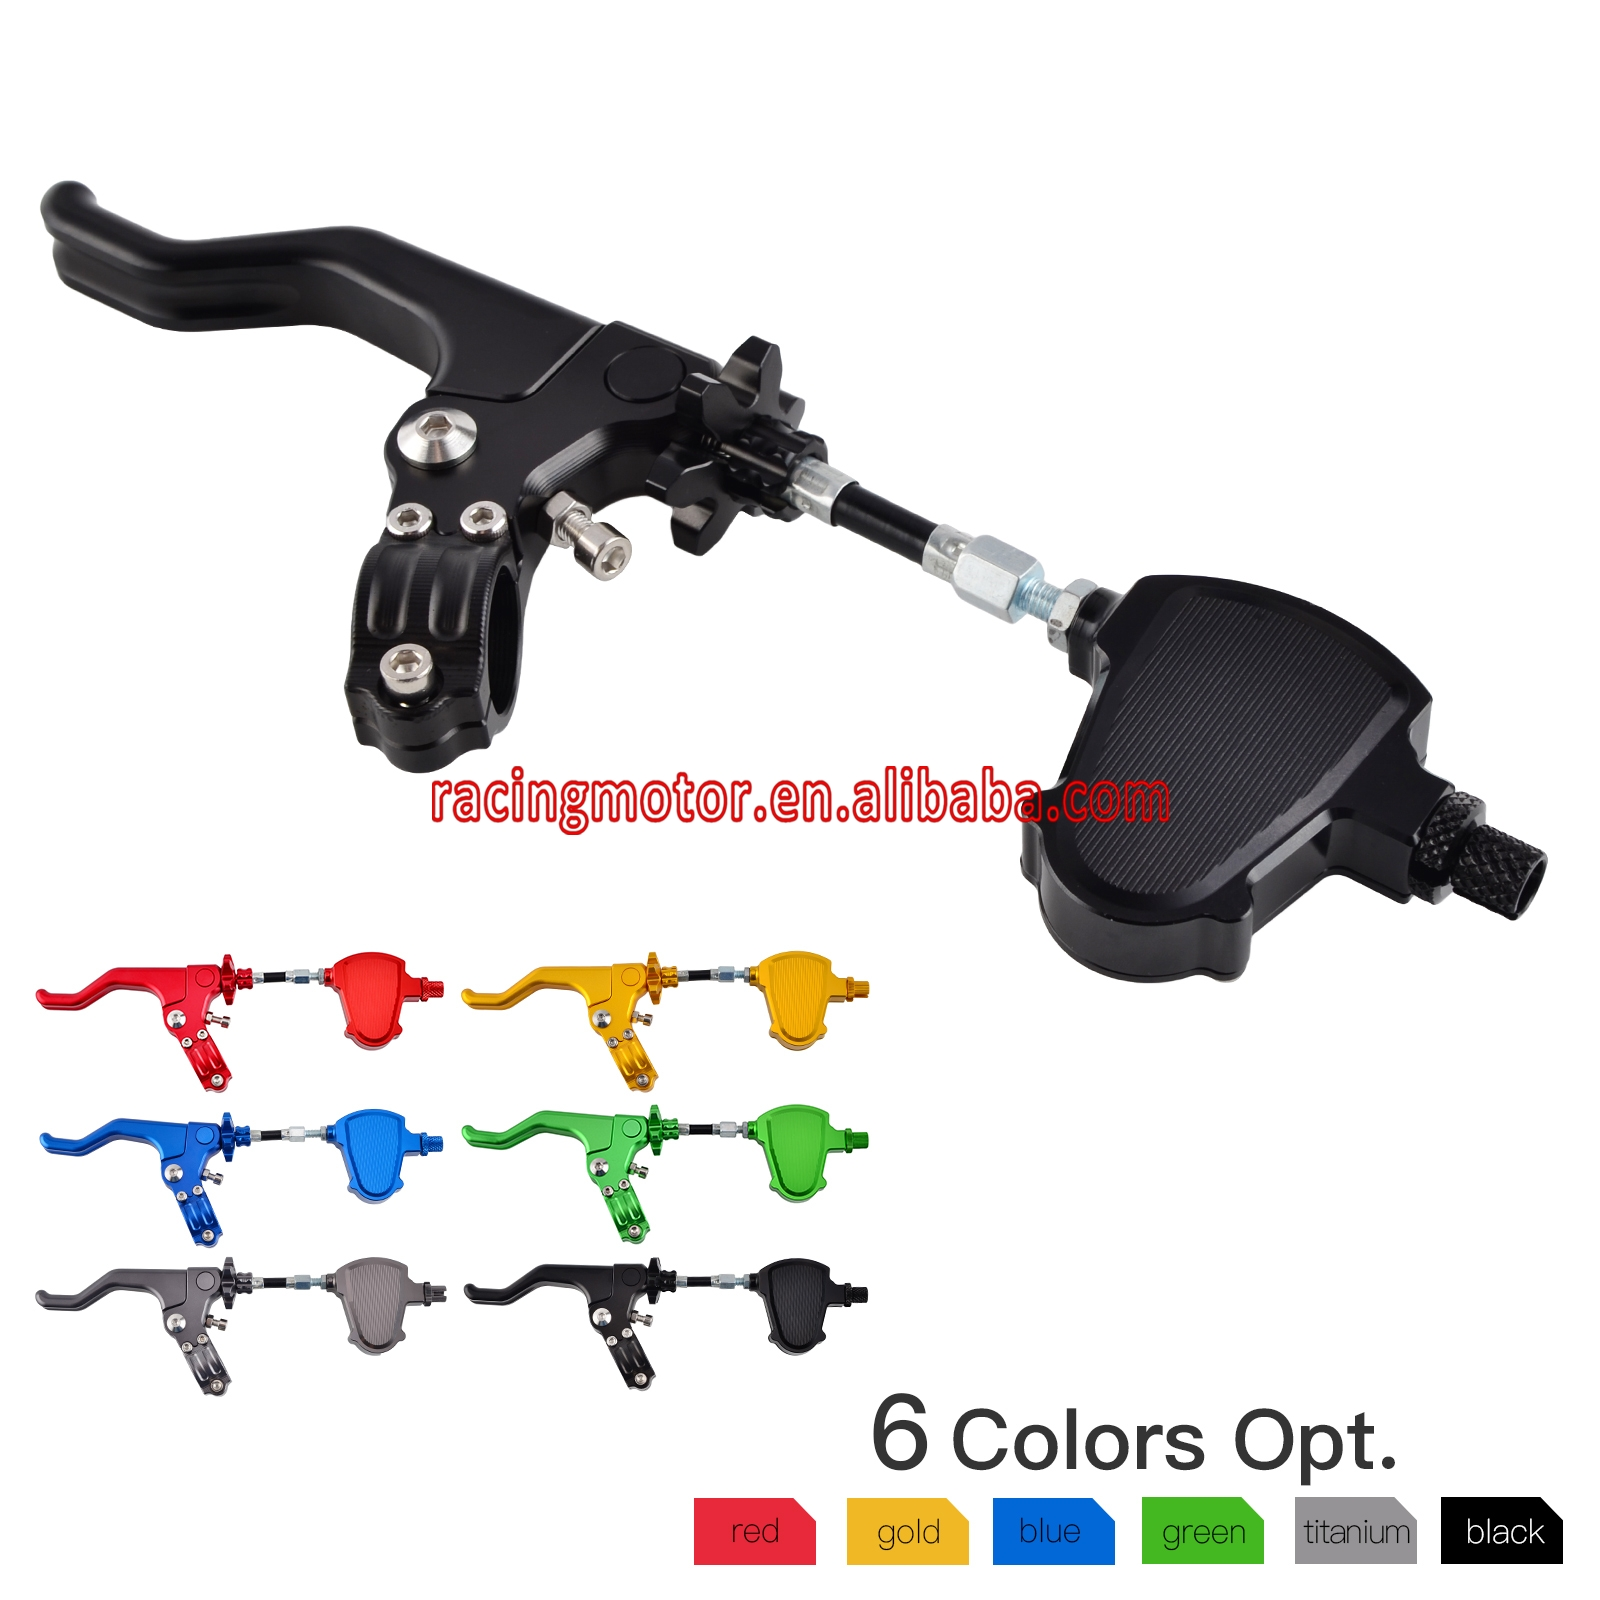 CNC Stunt Clutch Pull Cable Lever Easy System for Ducati Monster 797 821 Multistrada 950 Hypermotard 939 821 Scrambler cnc stunt clutch pull cable lever easy system for yamaha yz85 yz125 yz250 yz250f yz450f wr250f wr250r wr250x wr450f